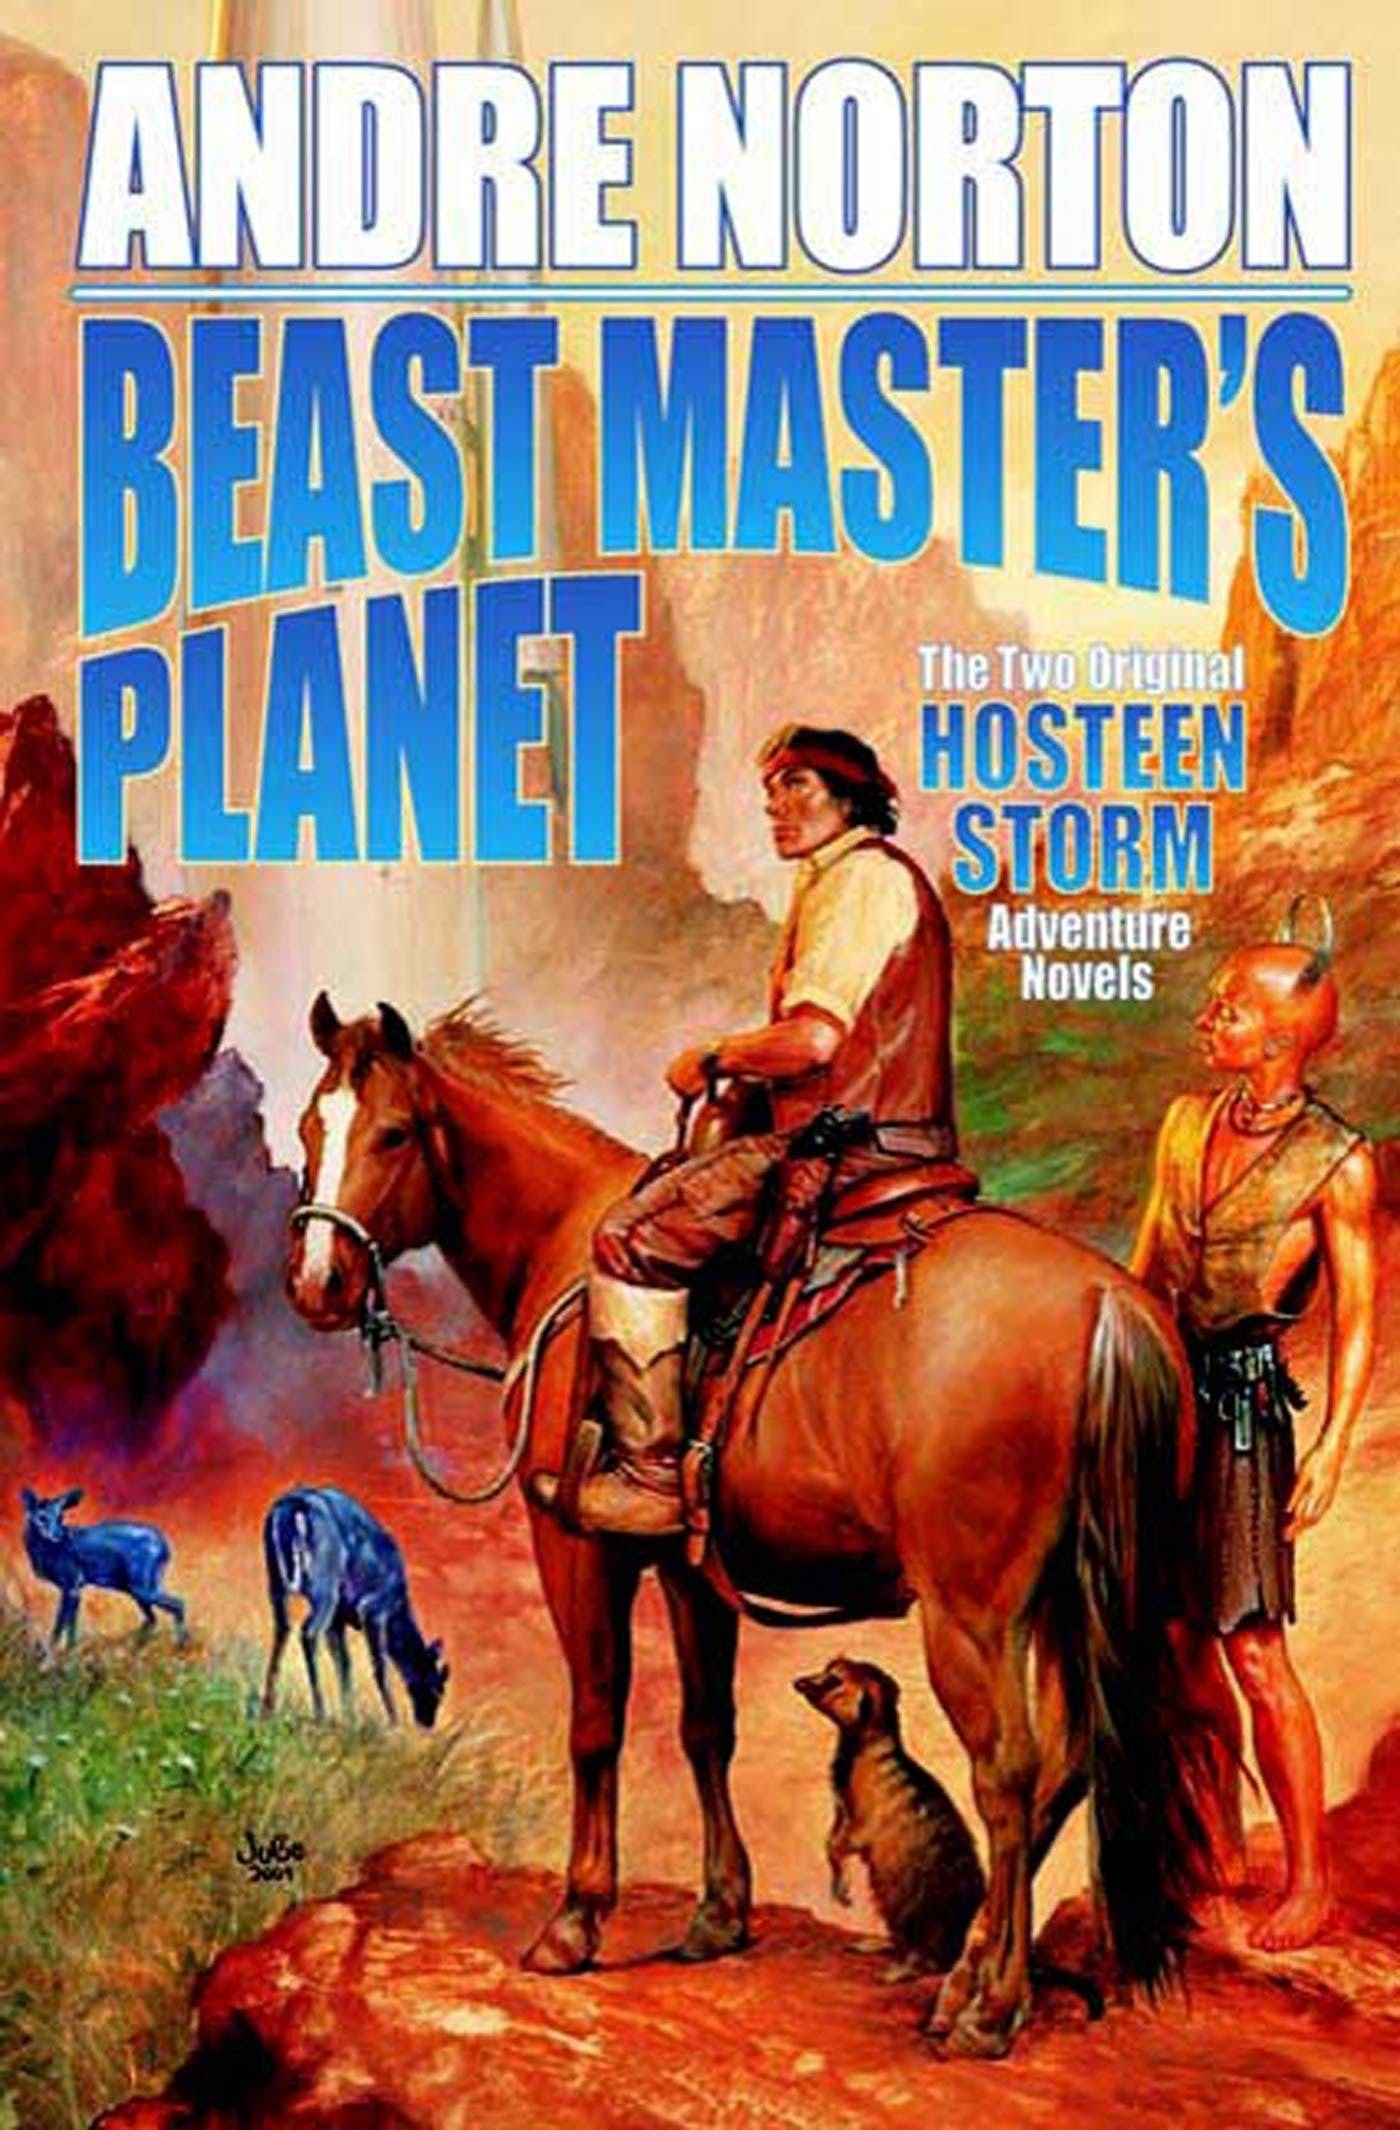 Image of Beast Master's Planet